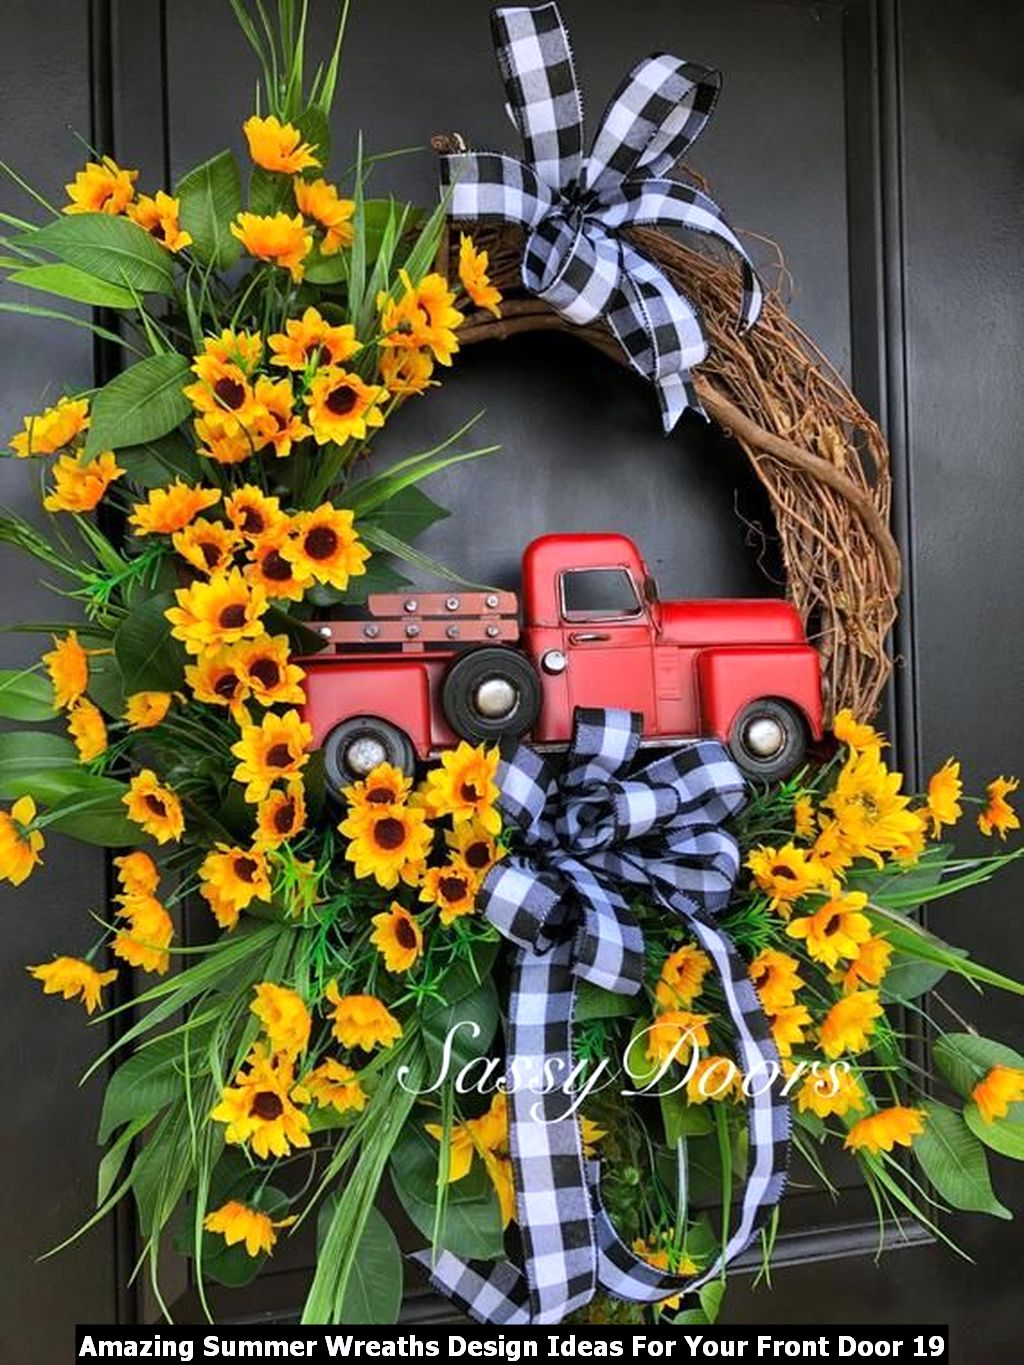 Amazing Summer Wreaths Design Ideas For Your Front Door 19